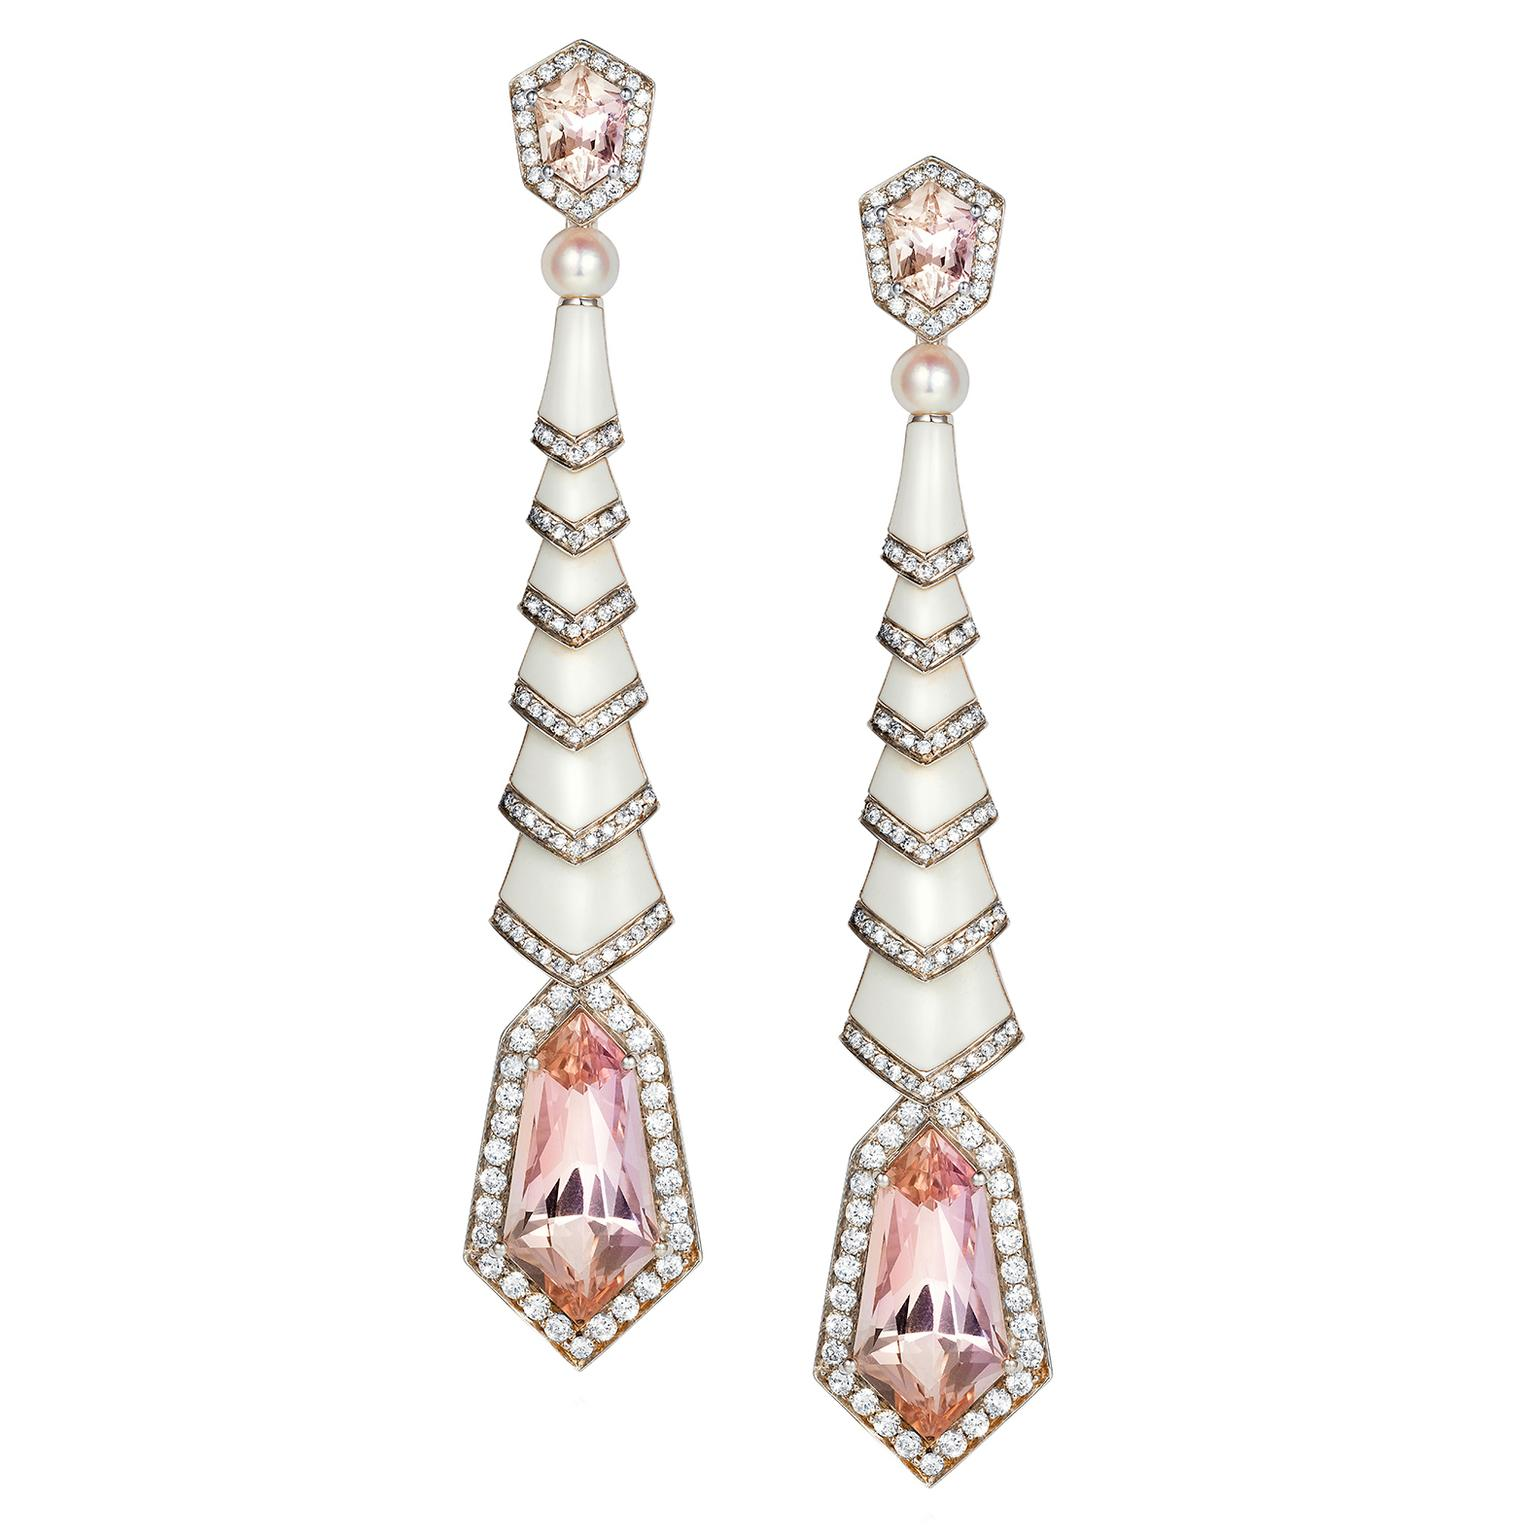 Avakian-Earrings-morg